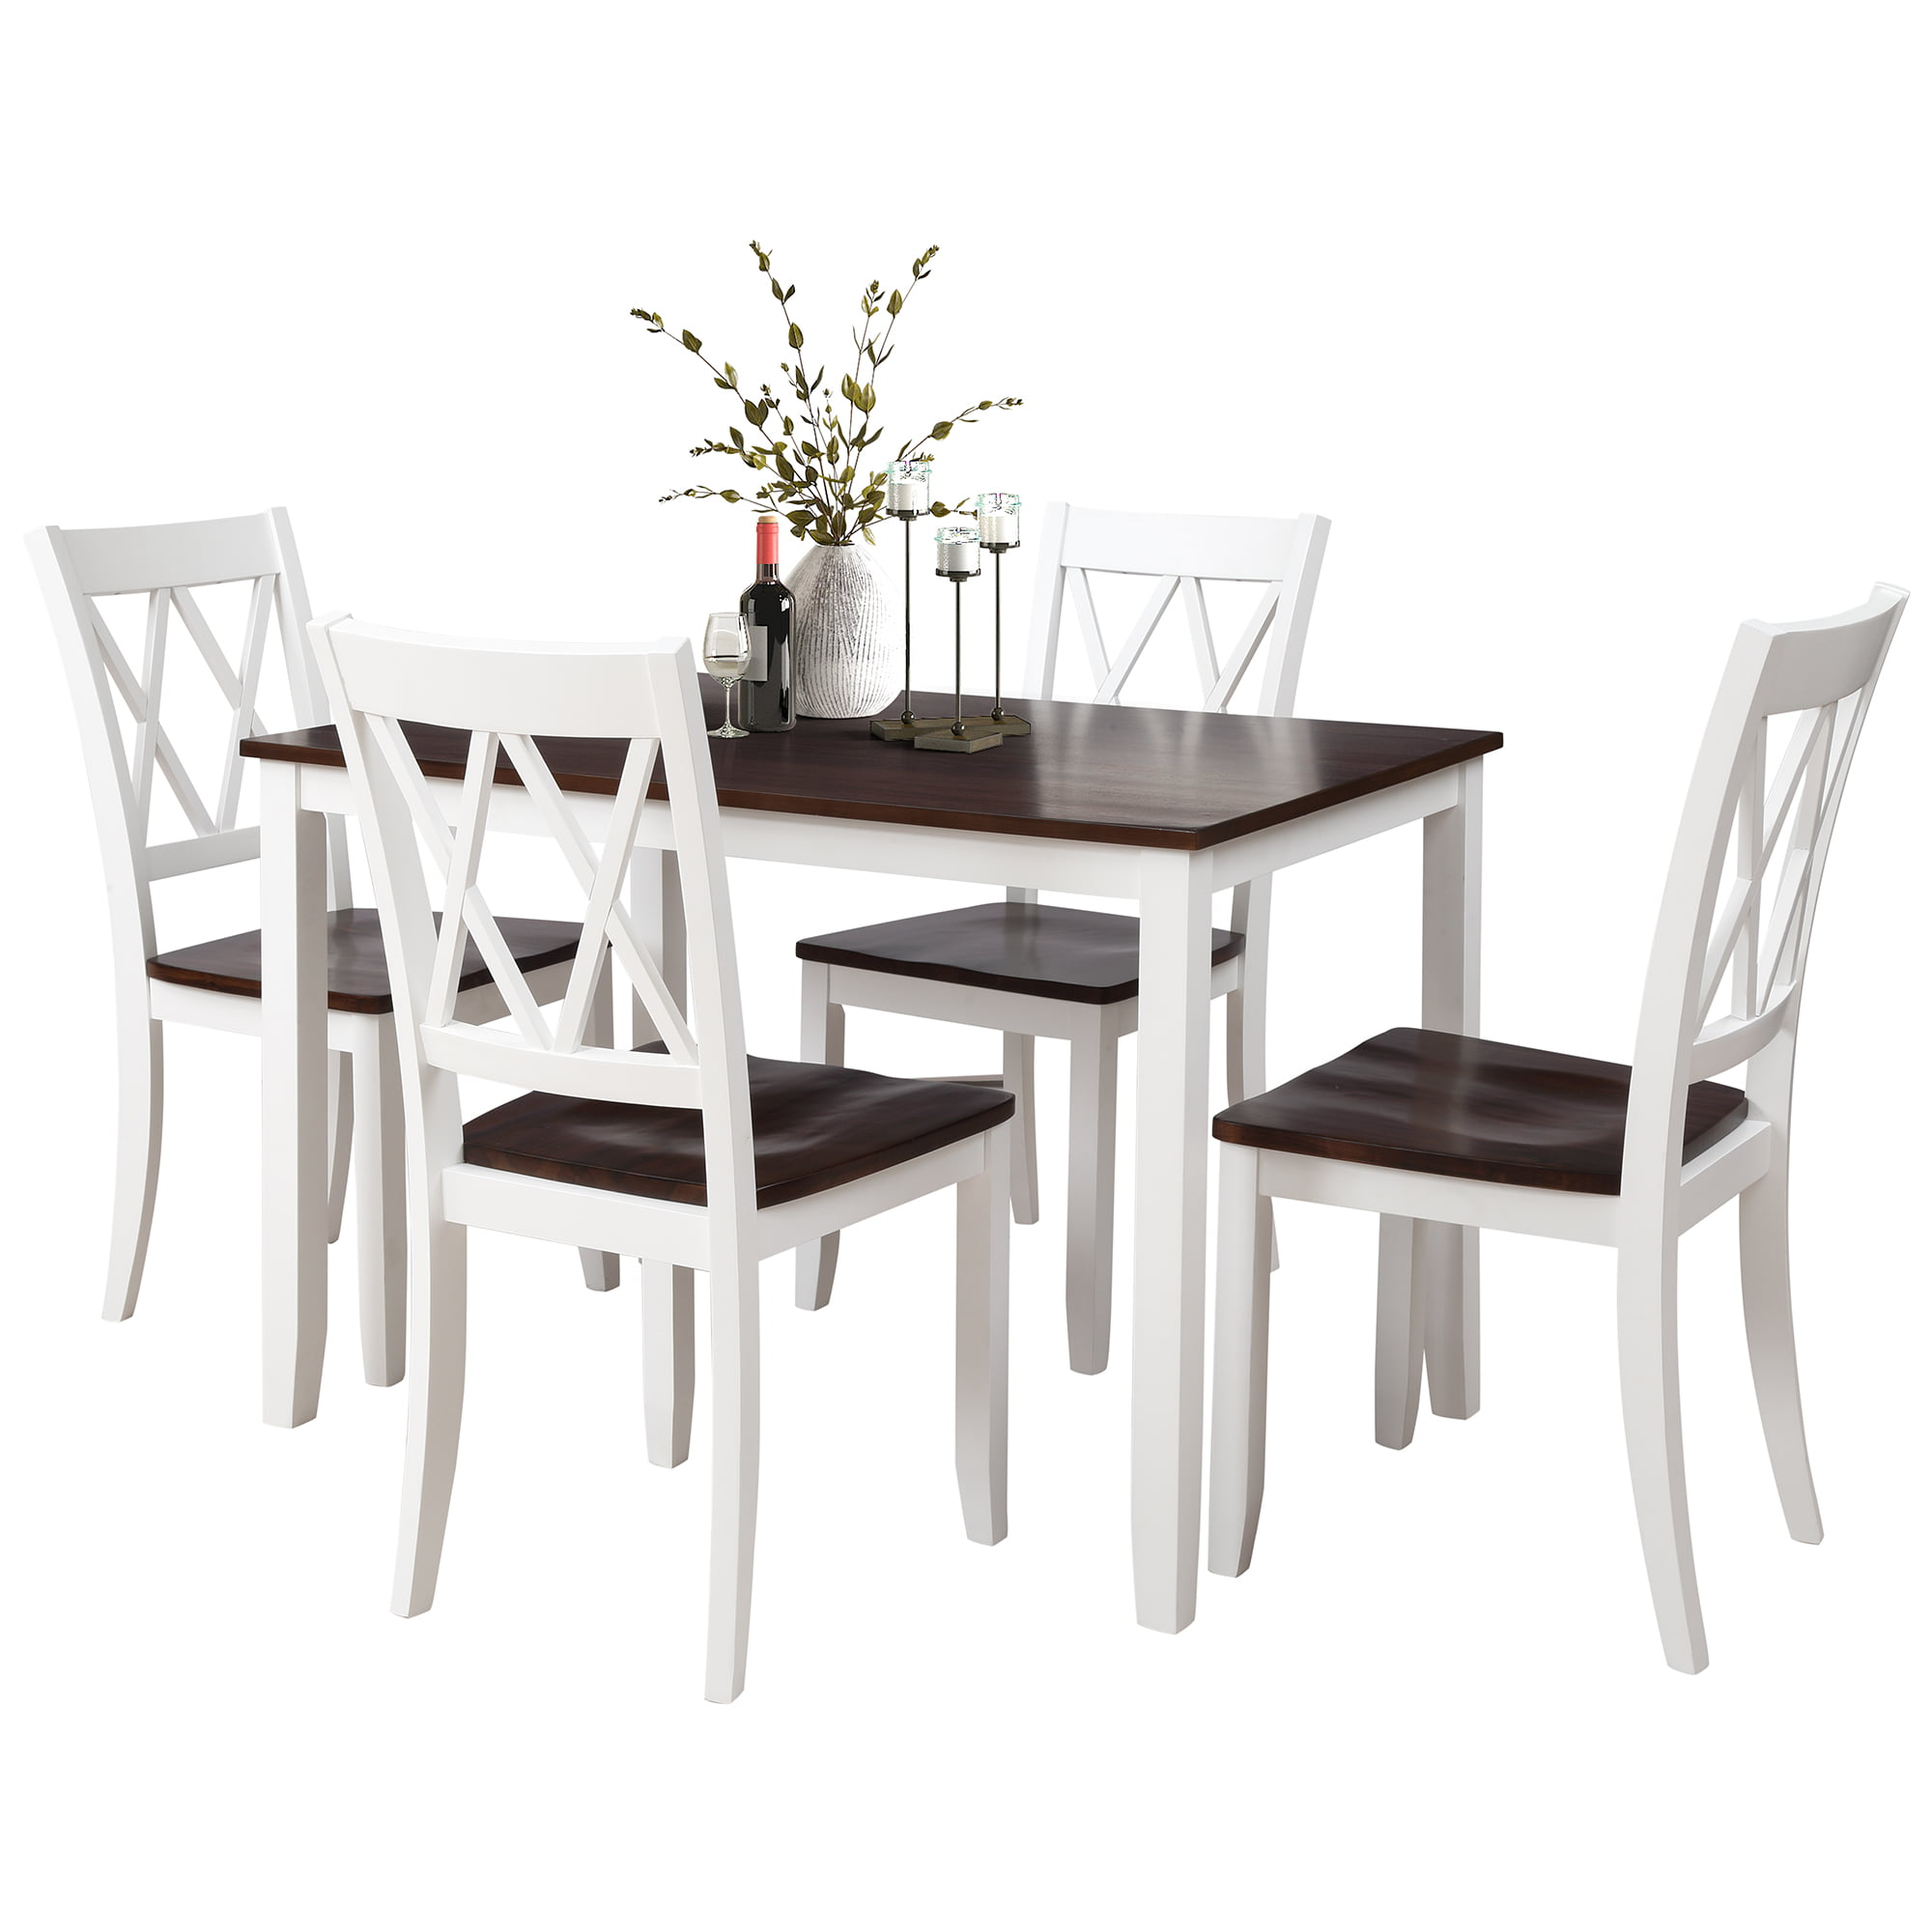 Kitchen Table Sets With Chairs For 4, 5 Piece Dining Table Sets With Bar Stools, Heavy Duty Wooden Rectangular Dining Room Table Set With White Finish For Home, Kitchen, Living Room, Restaurant,